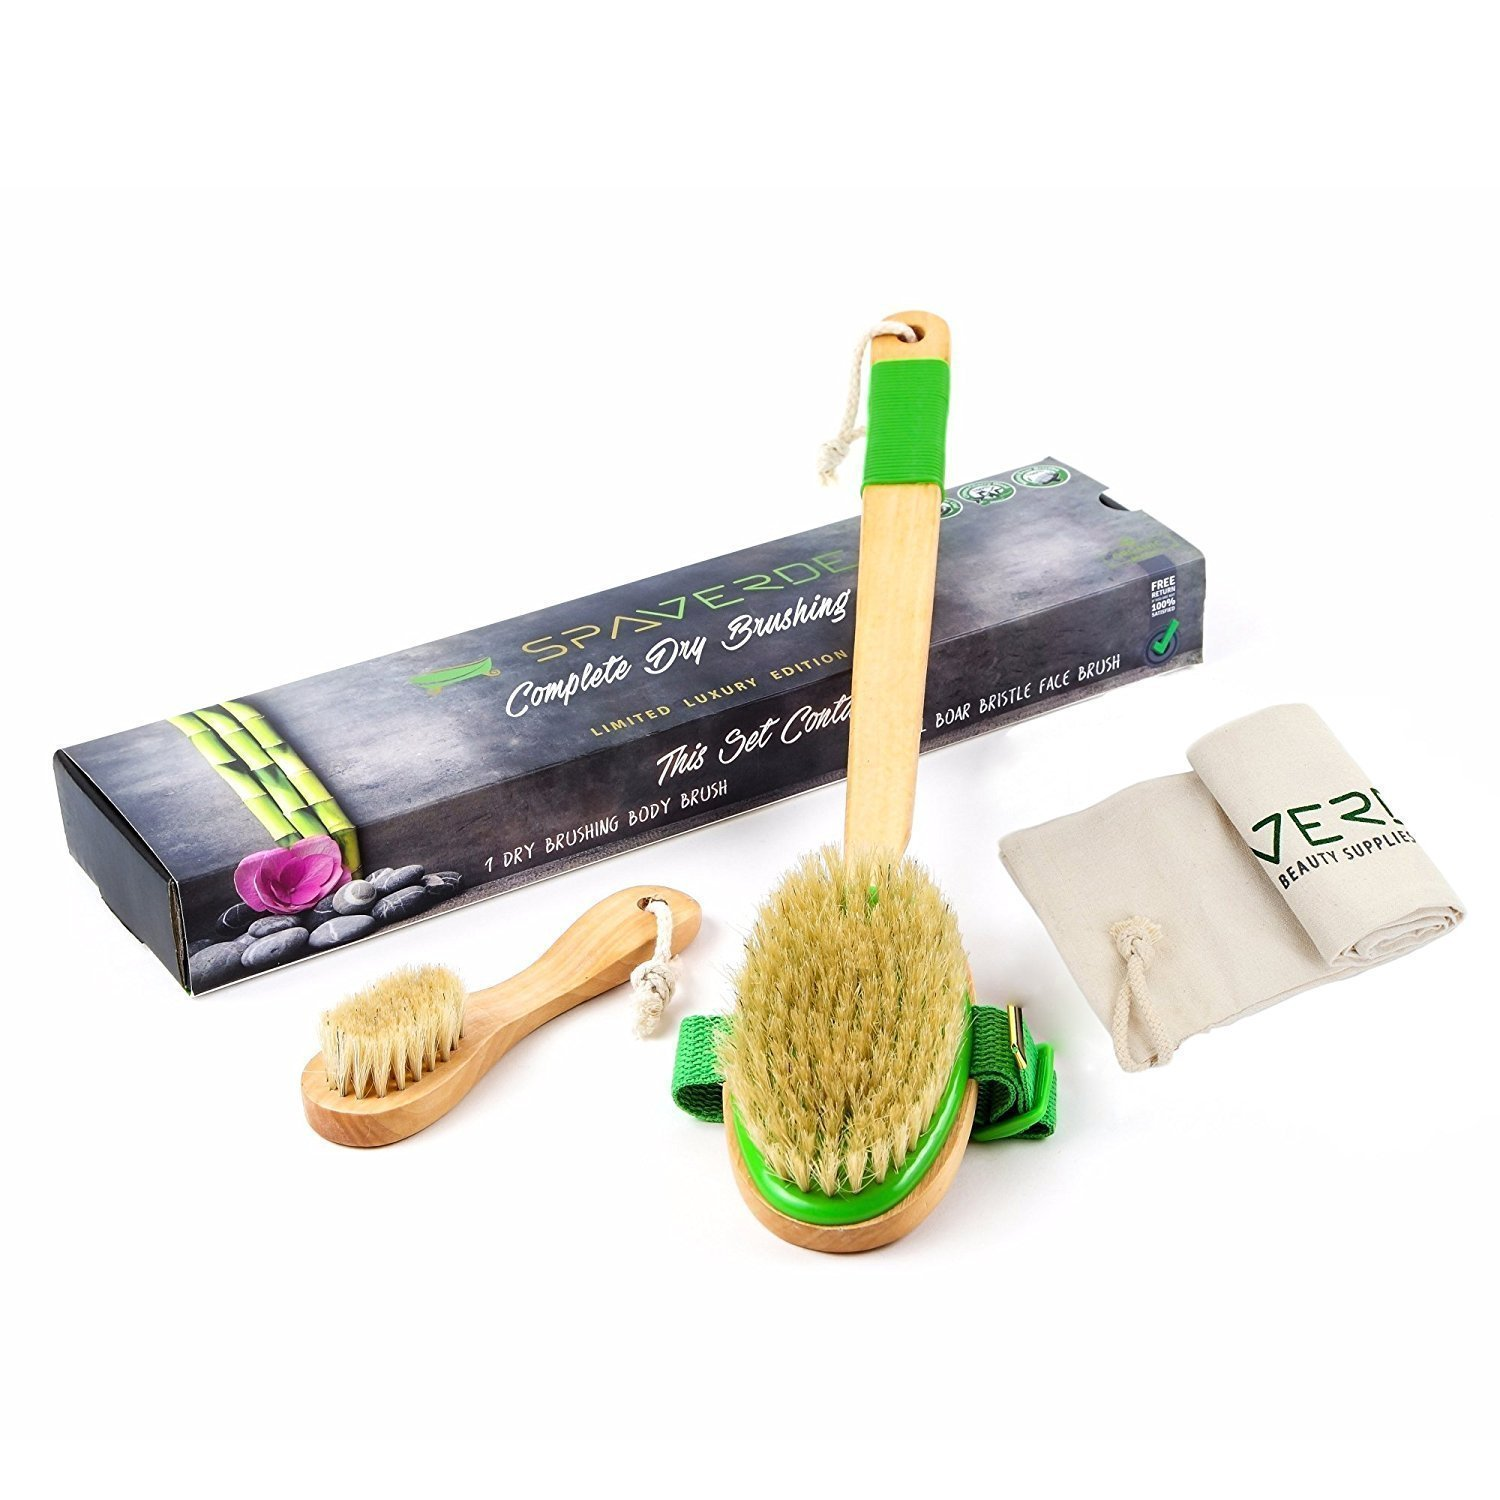 SpaVerde Body Brush - Can Be Used as a Gentle Dry Brushing Brush or as a Bath Brush.